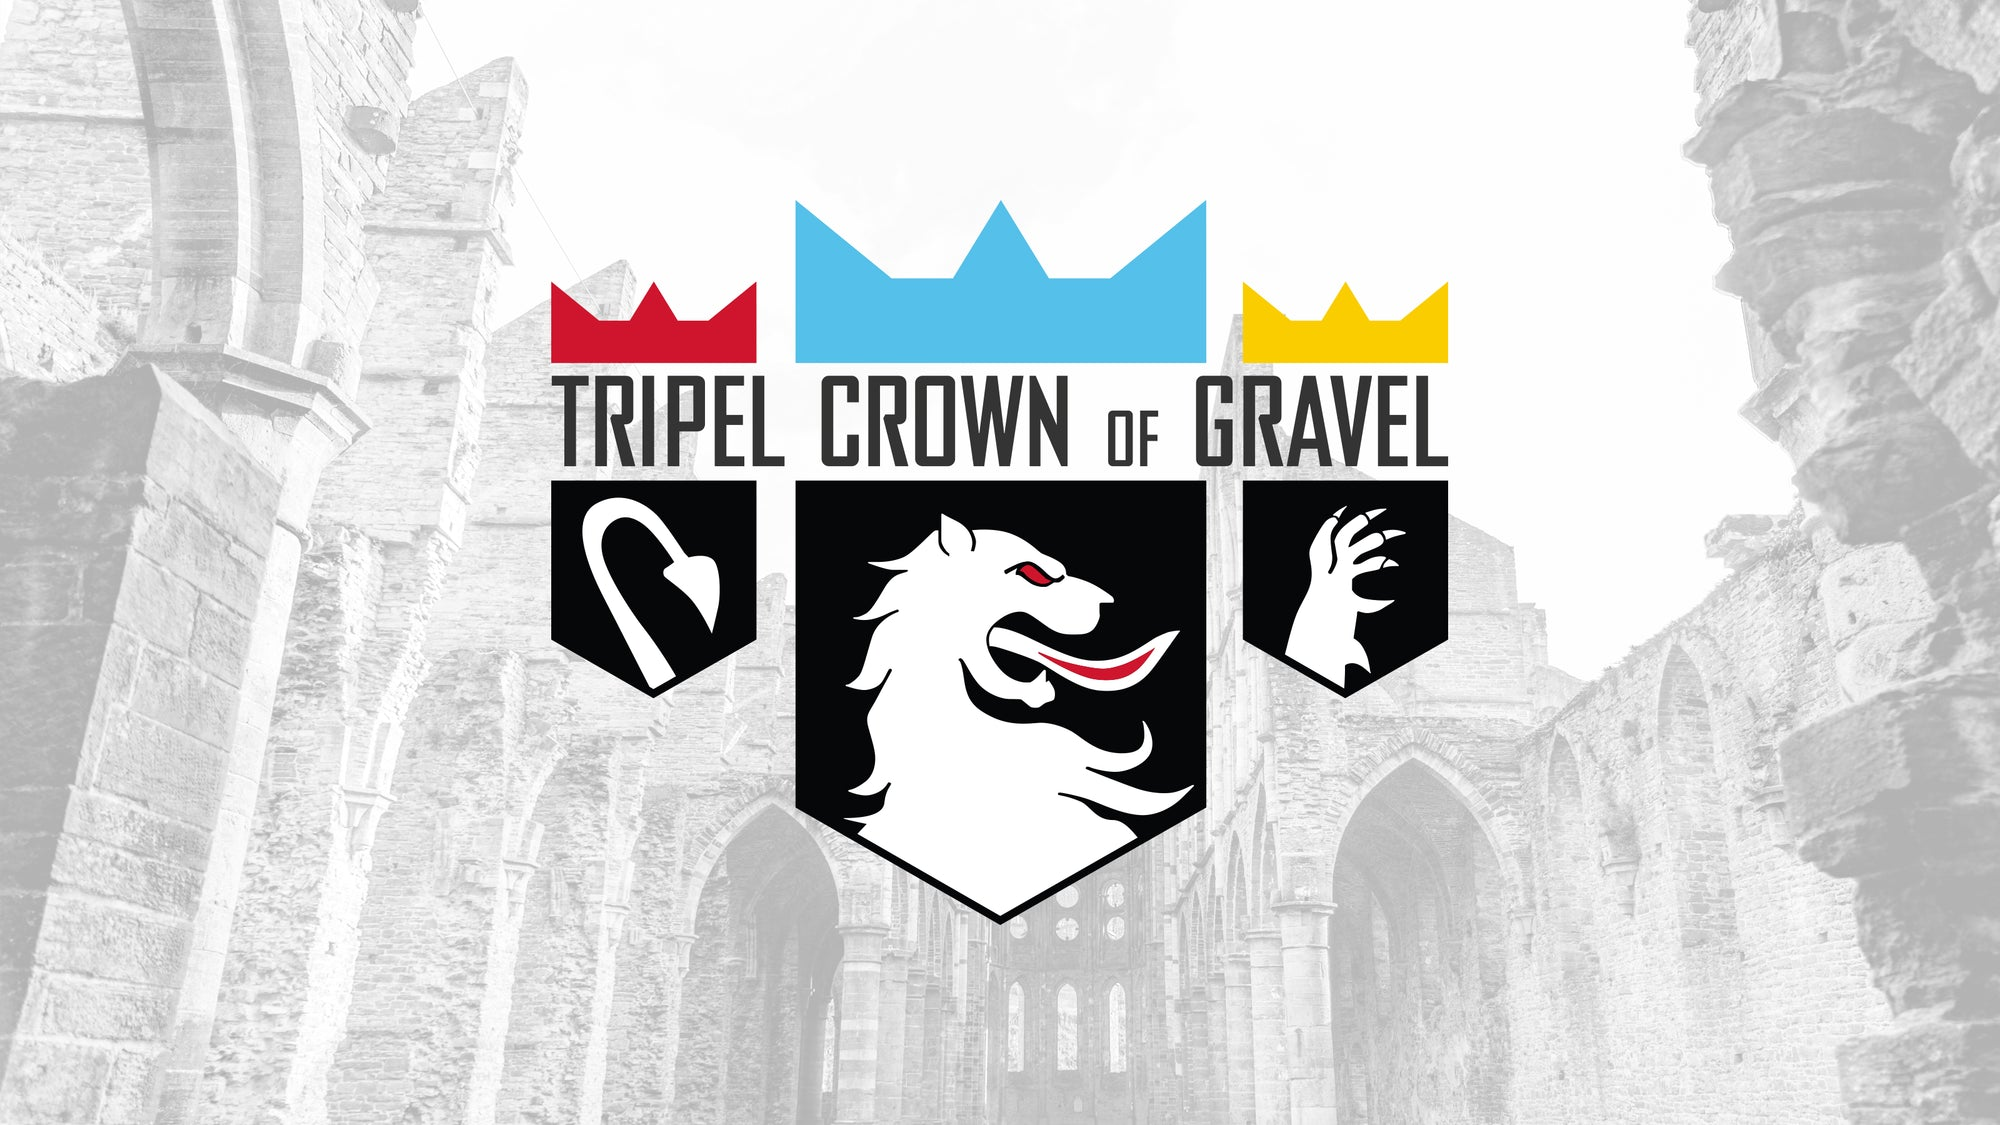 MONUMENTS OF CYCLING ANNOUNCE THE TRIPEL CROWN OF GRAVEL